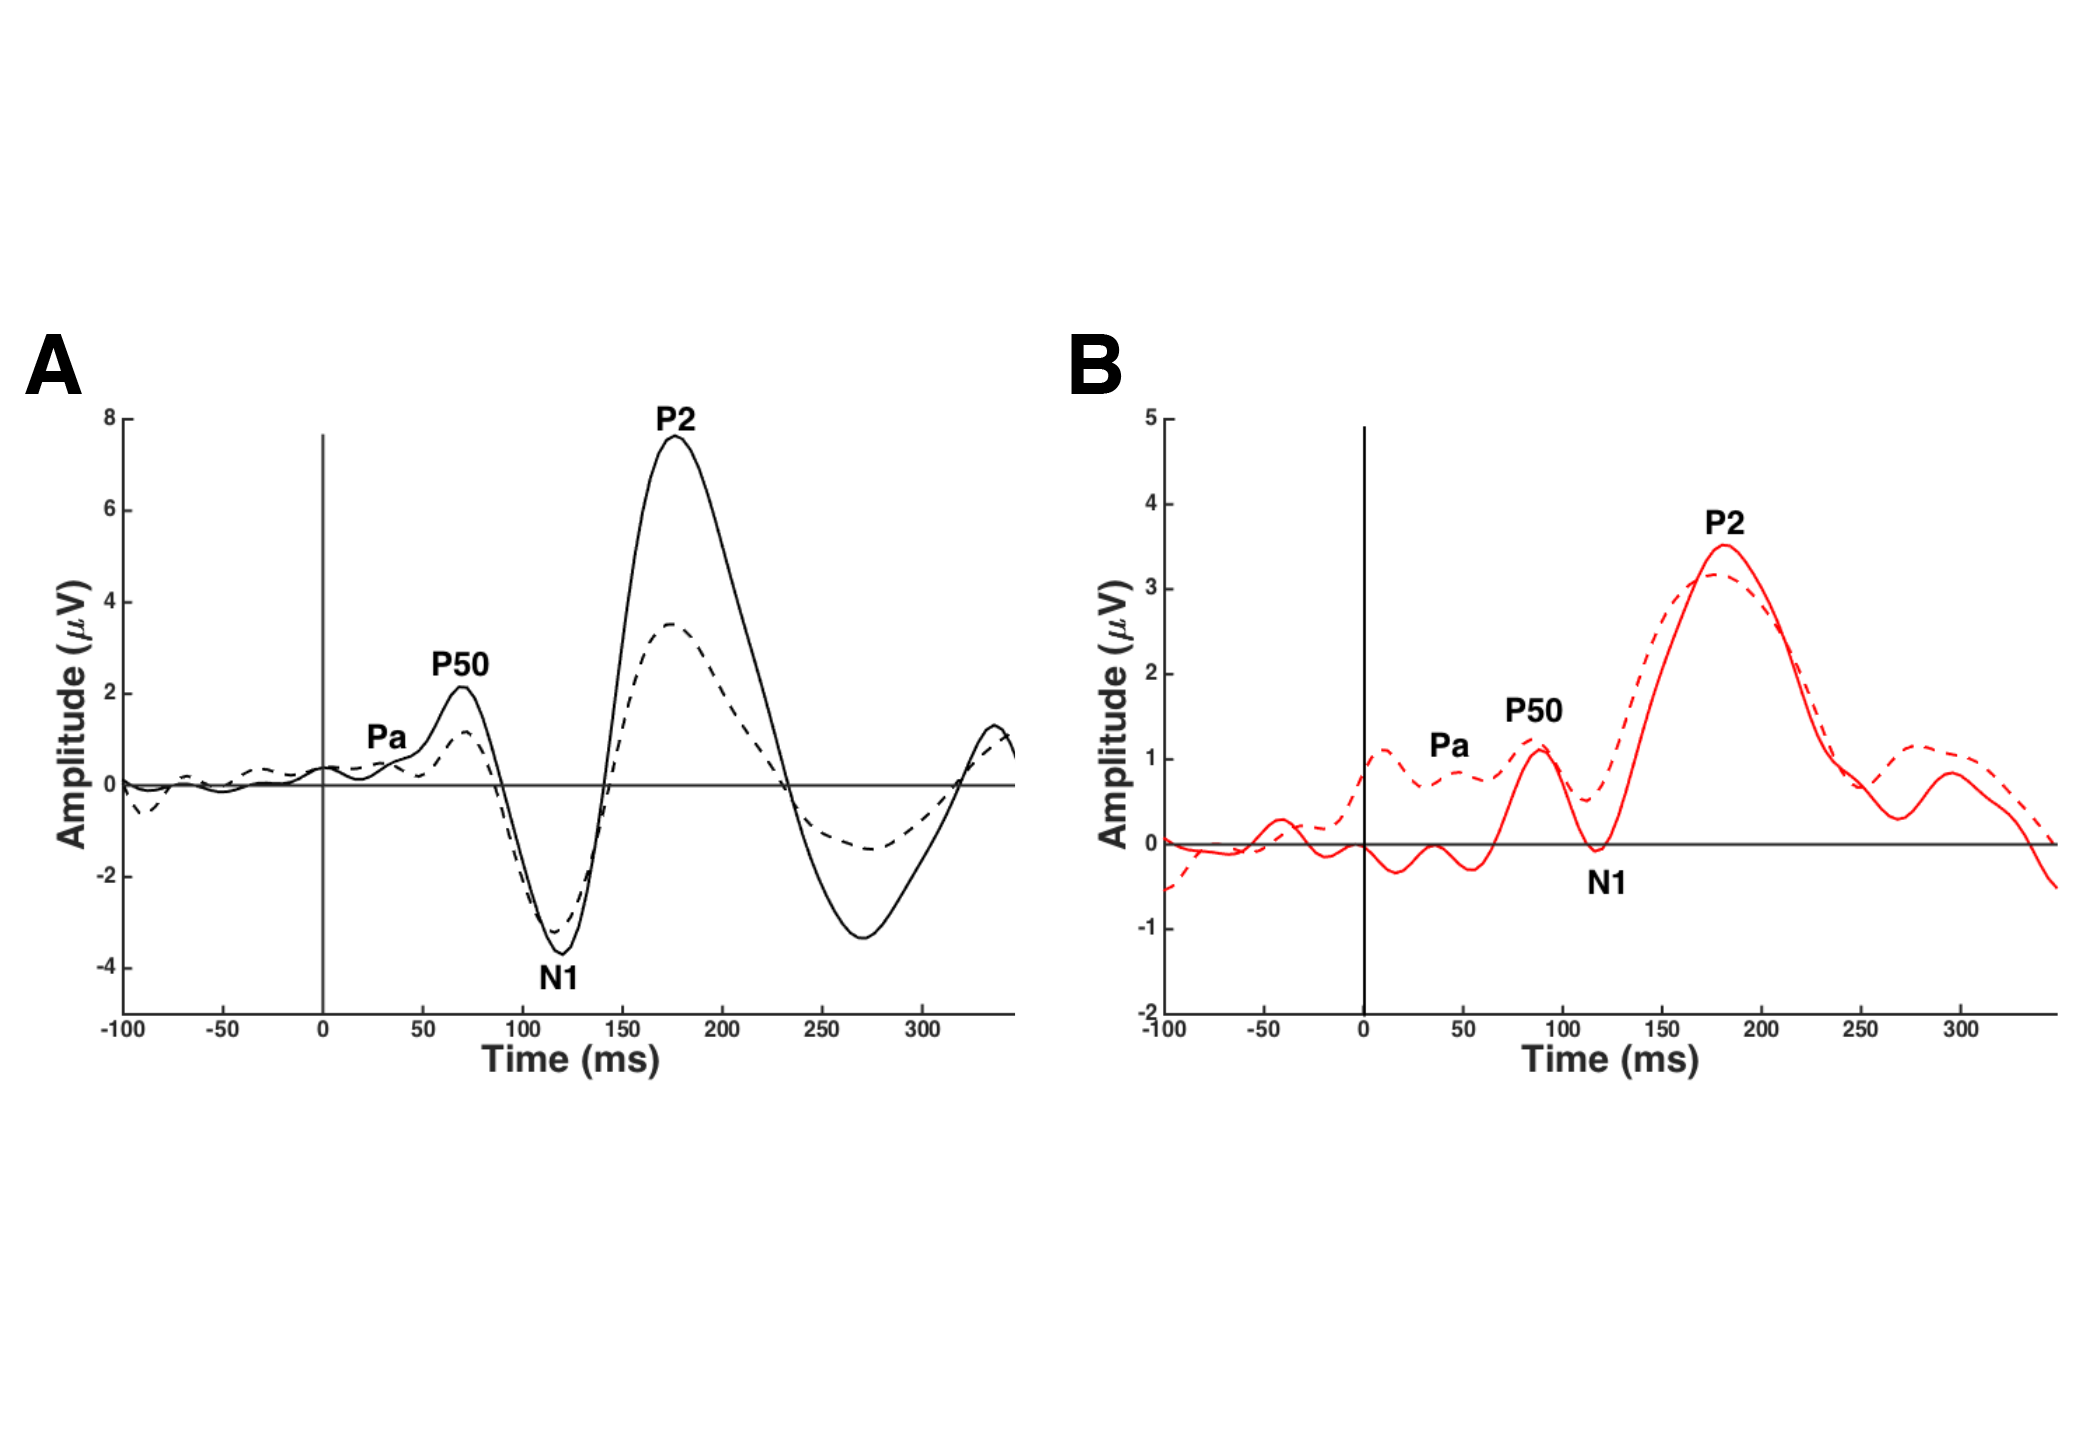 CAEP gating waveforms in A) a typical-hearing subject without tinnitus and B) a typical-hearing subject with tinnitus. The solid line represents the CAEP response to the first stimulus (S1) in a tonal pair, and the dashed the CAEP response to the second stimulus (S2) in a tonal pair. Typical gating is observed when CAEP S2 amplitude is lower compared with CAEP S1 amplitude (A). Atypical gating occurs when CAEP S2 amplitude is equal to or larger than CAEP S1 amplitude (B).